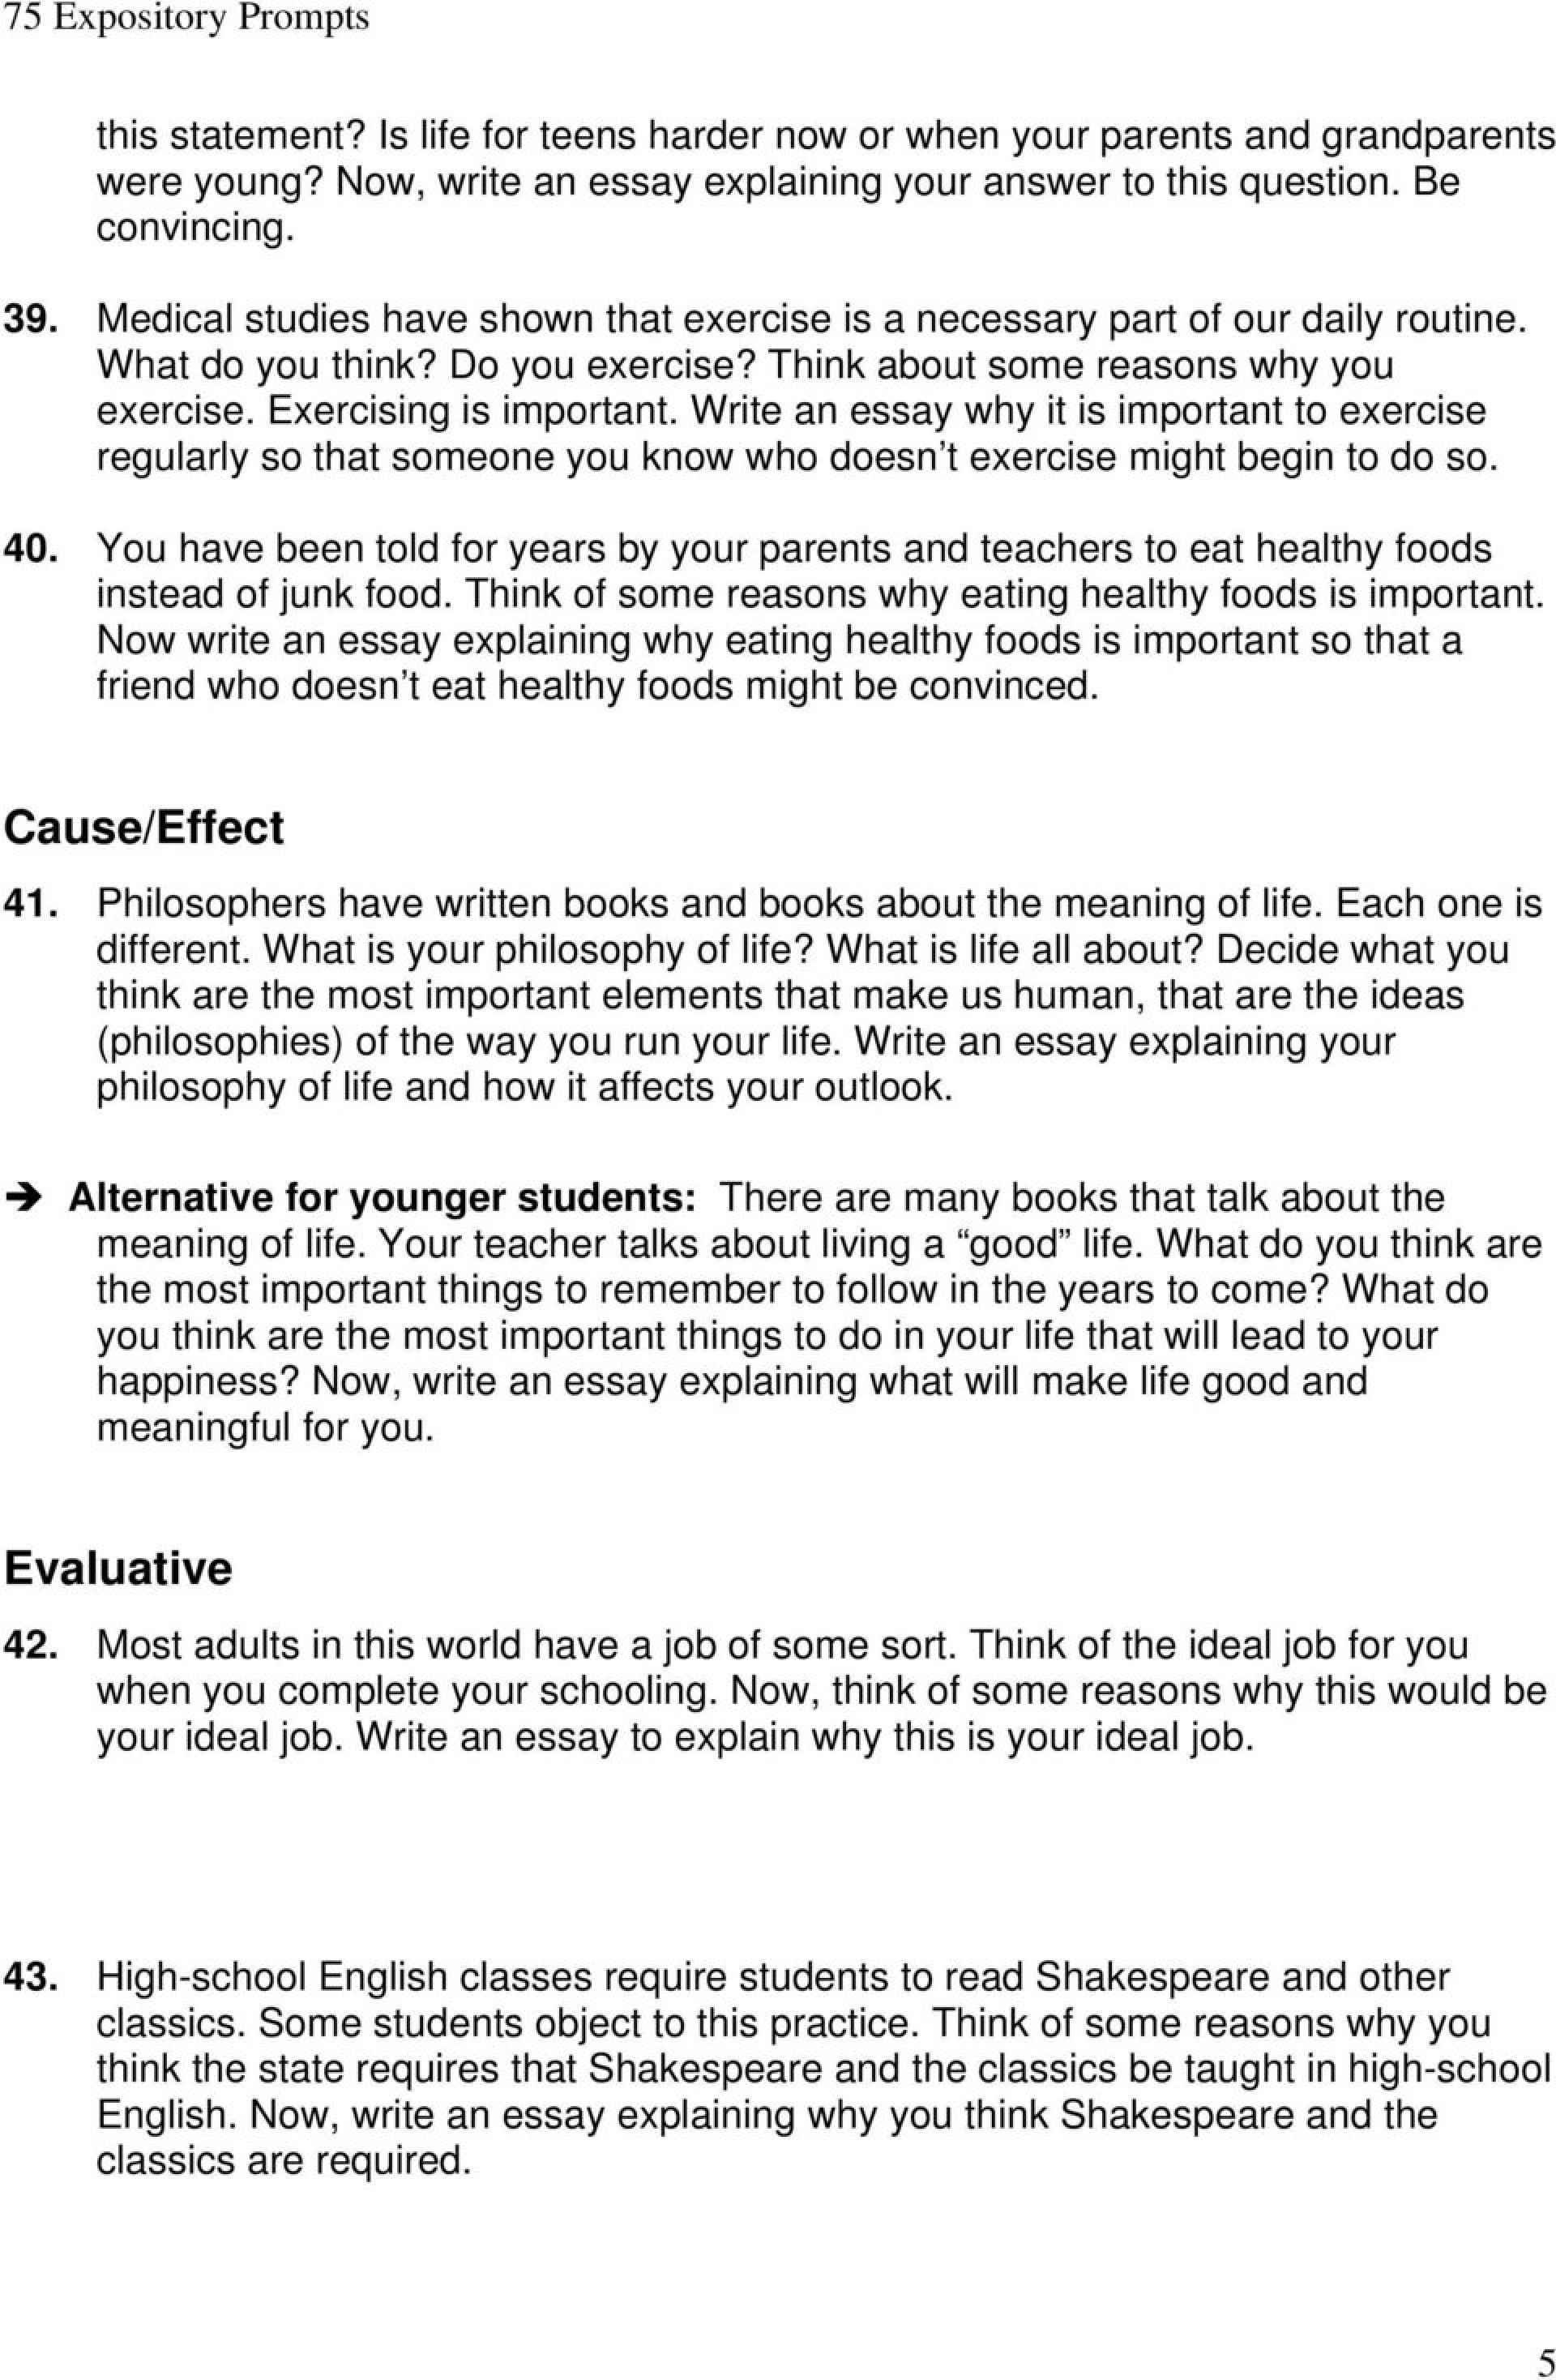 Introductory transition words for essays